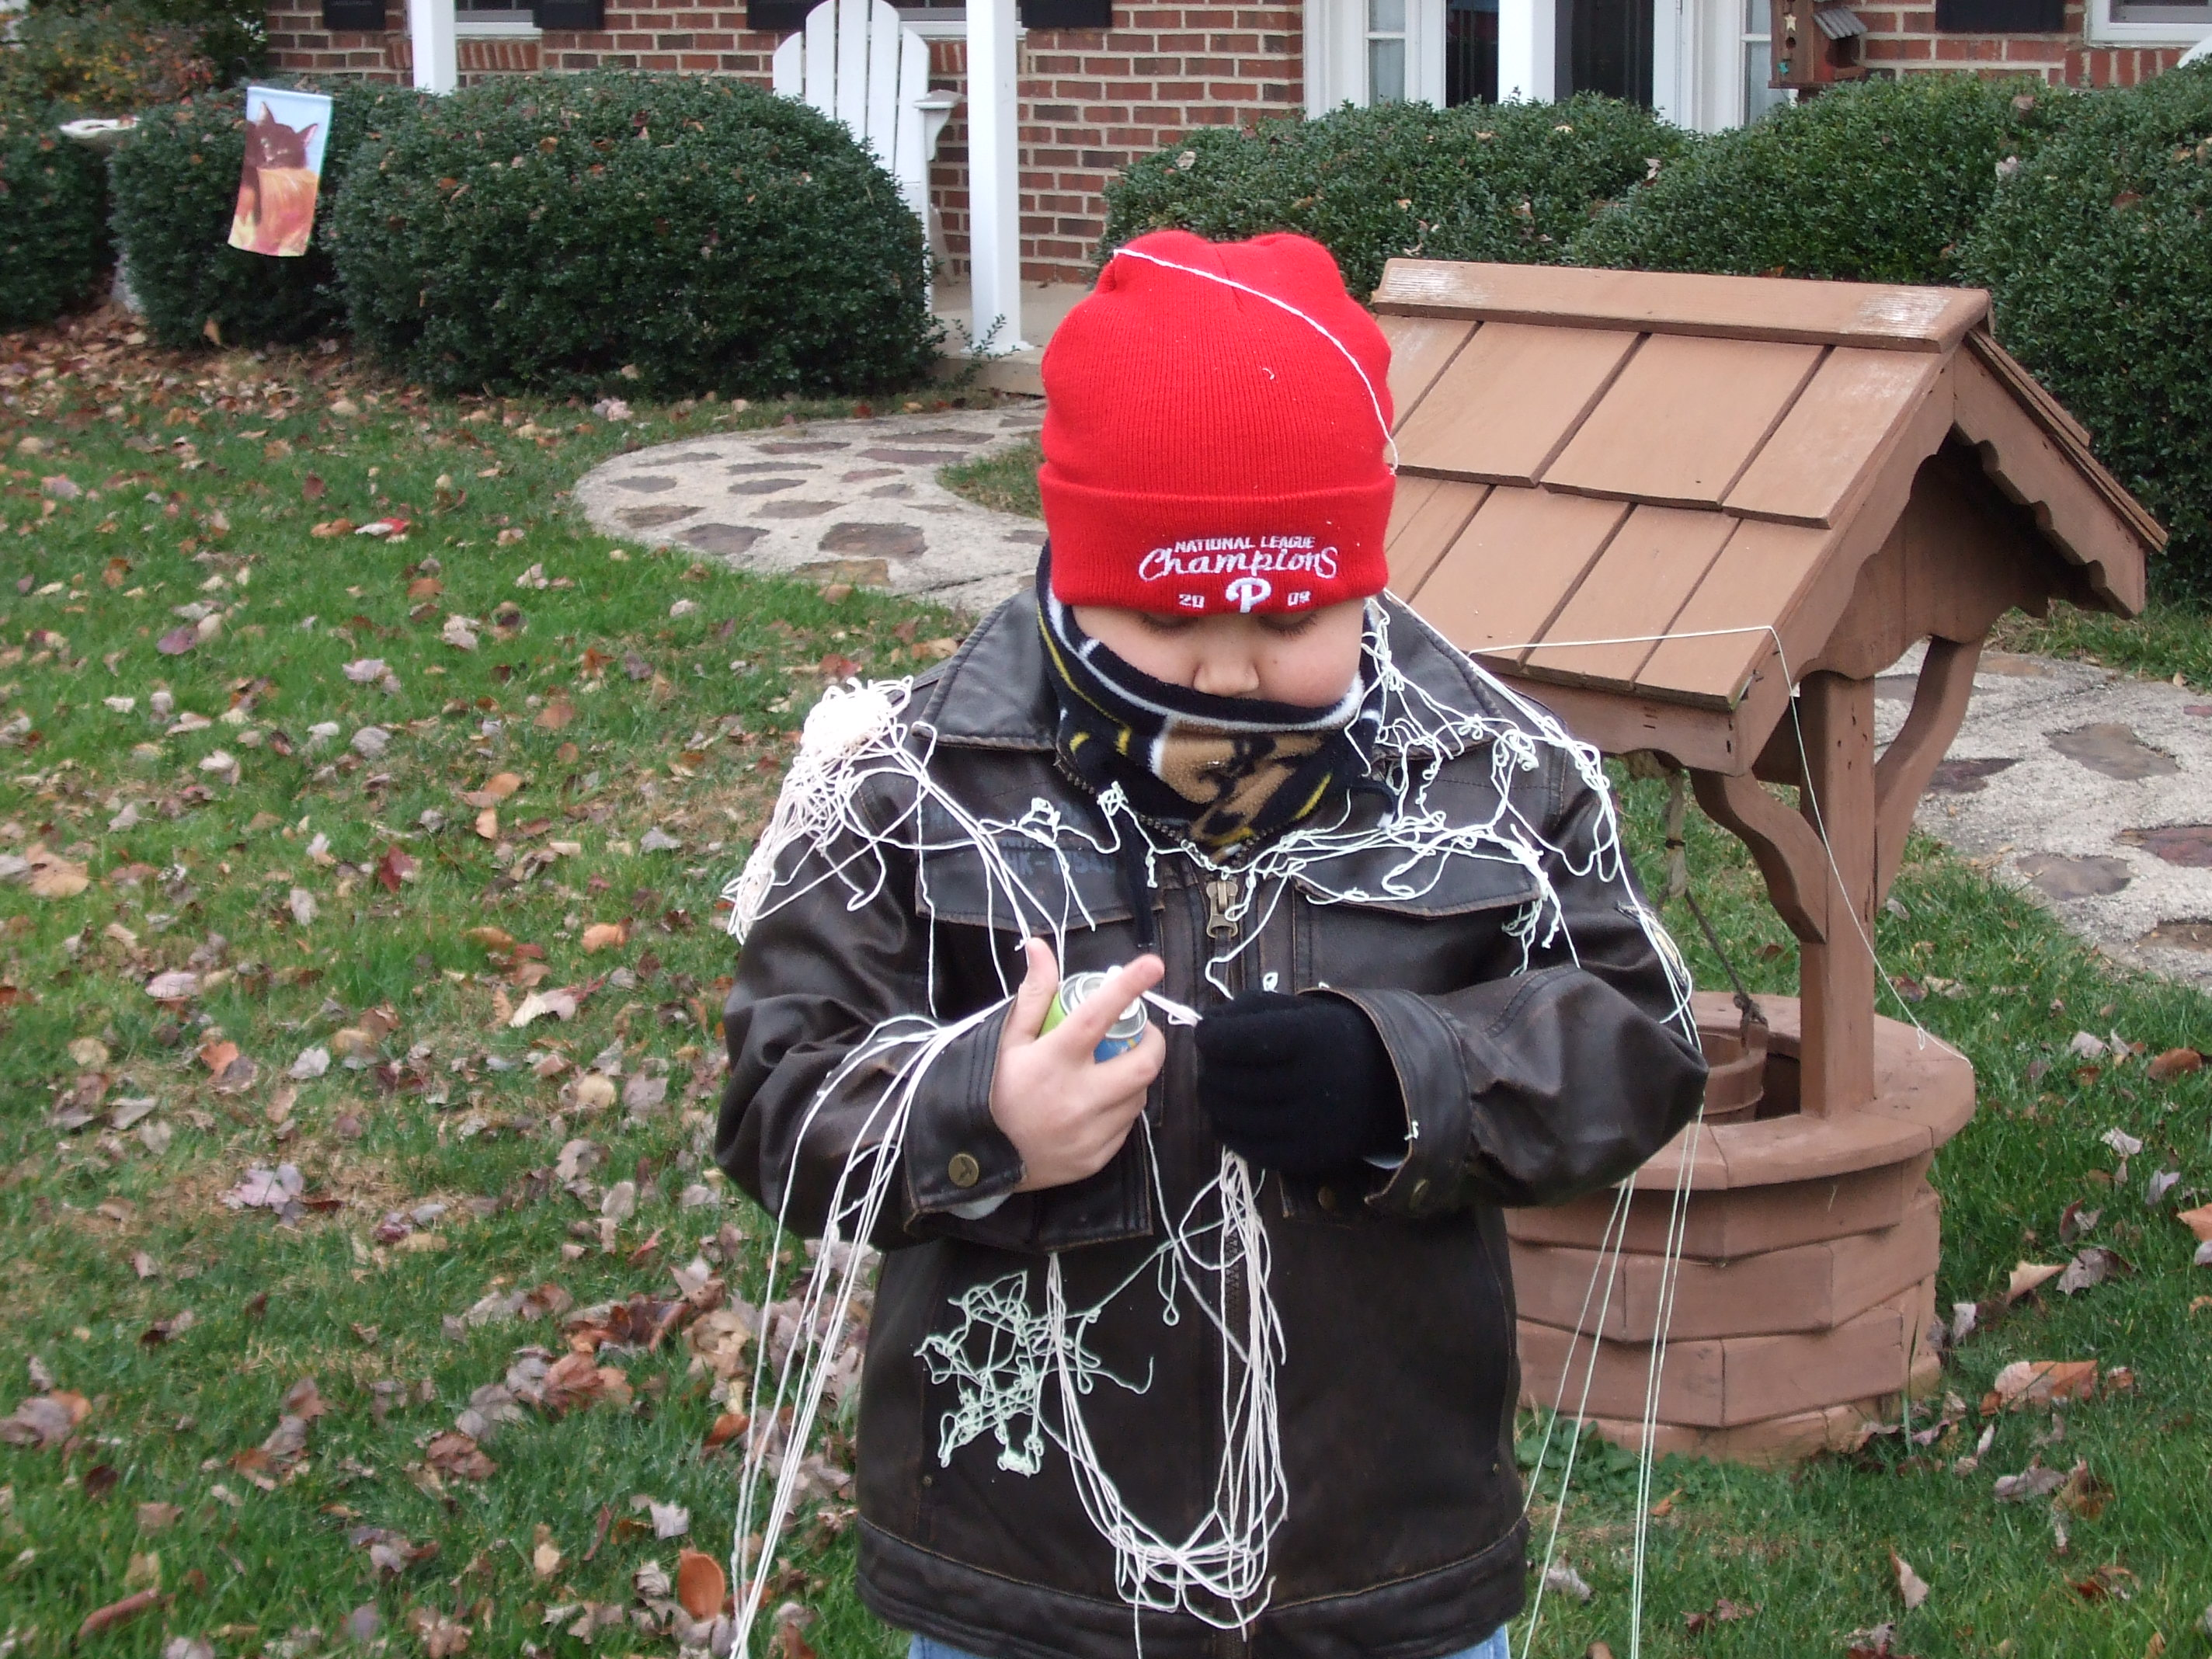 Austin got Eli with the Silly String as well.